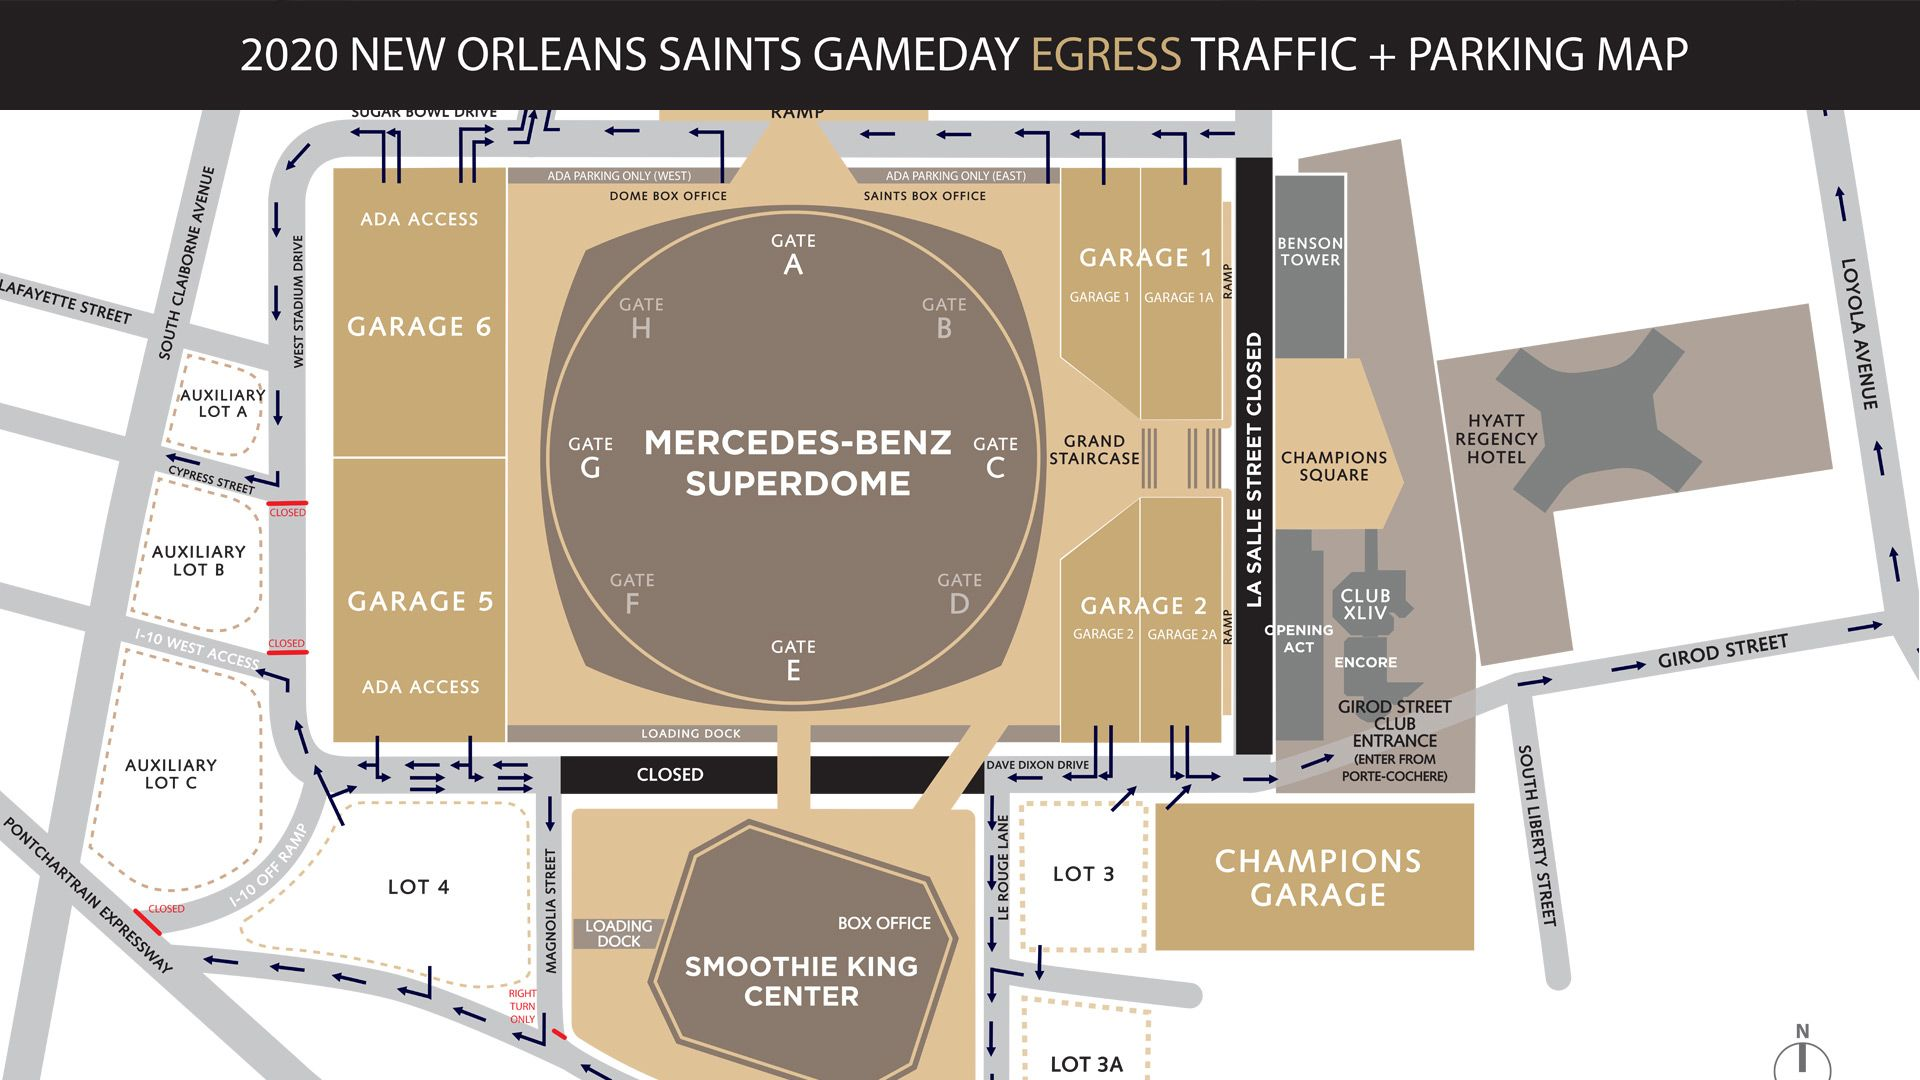 New Orleans Saints Gameday Egress Traffic and Parking Map